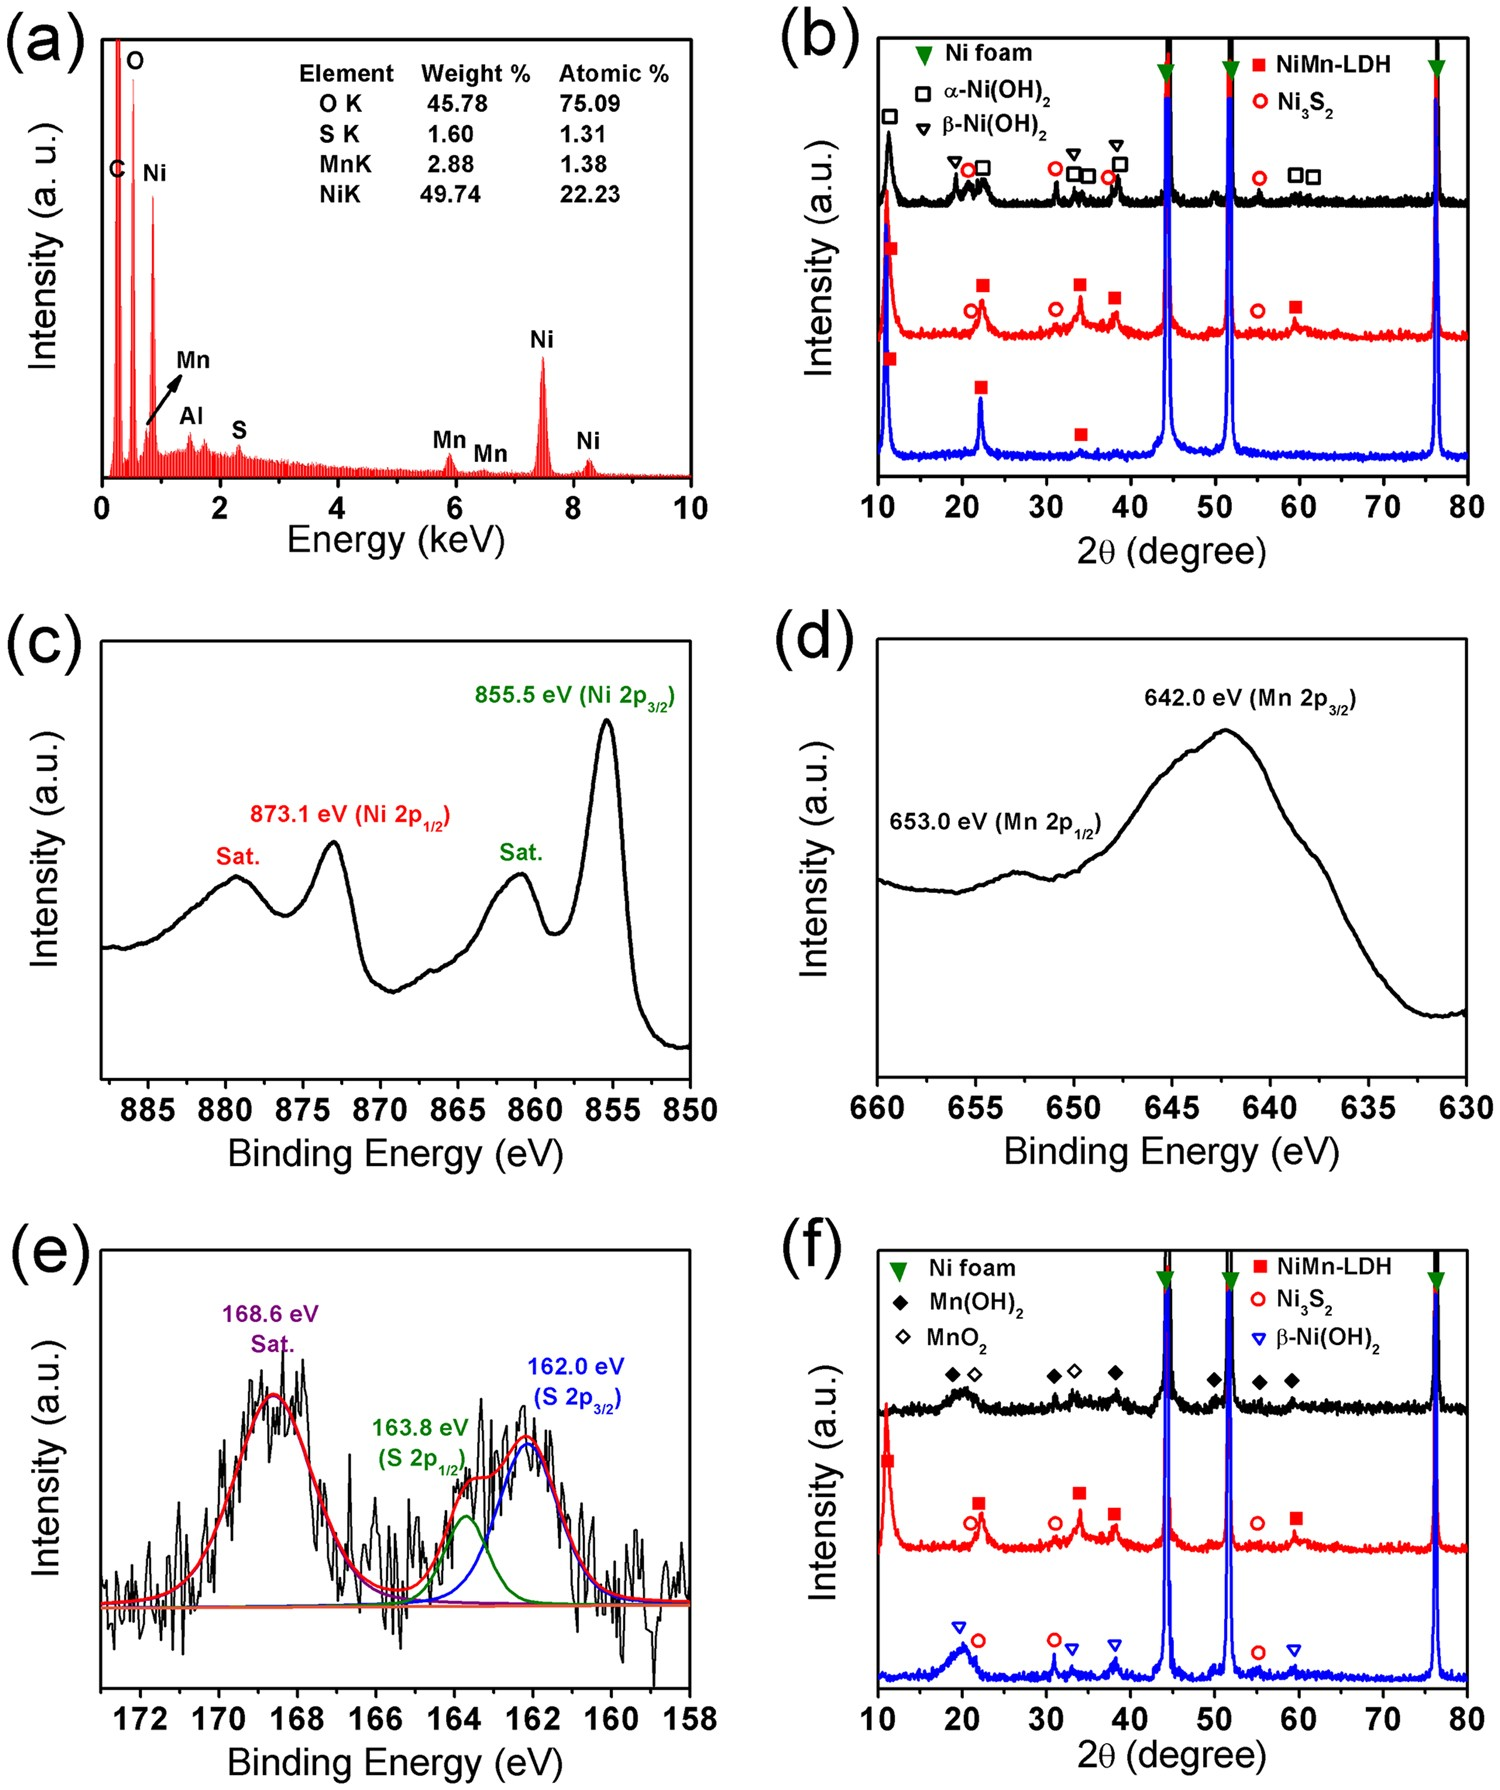 Synthesis Of Nimn Ldh Nanosheet Ni 3 S 2 Nanorod Hybrid Structures For Supercapacitor Electrode Materials With Ultrahigh Specific Capacitance Scientific